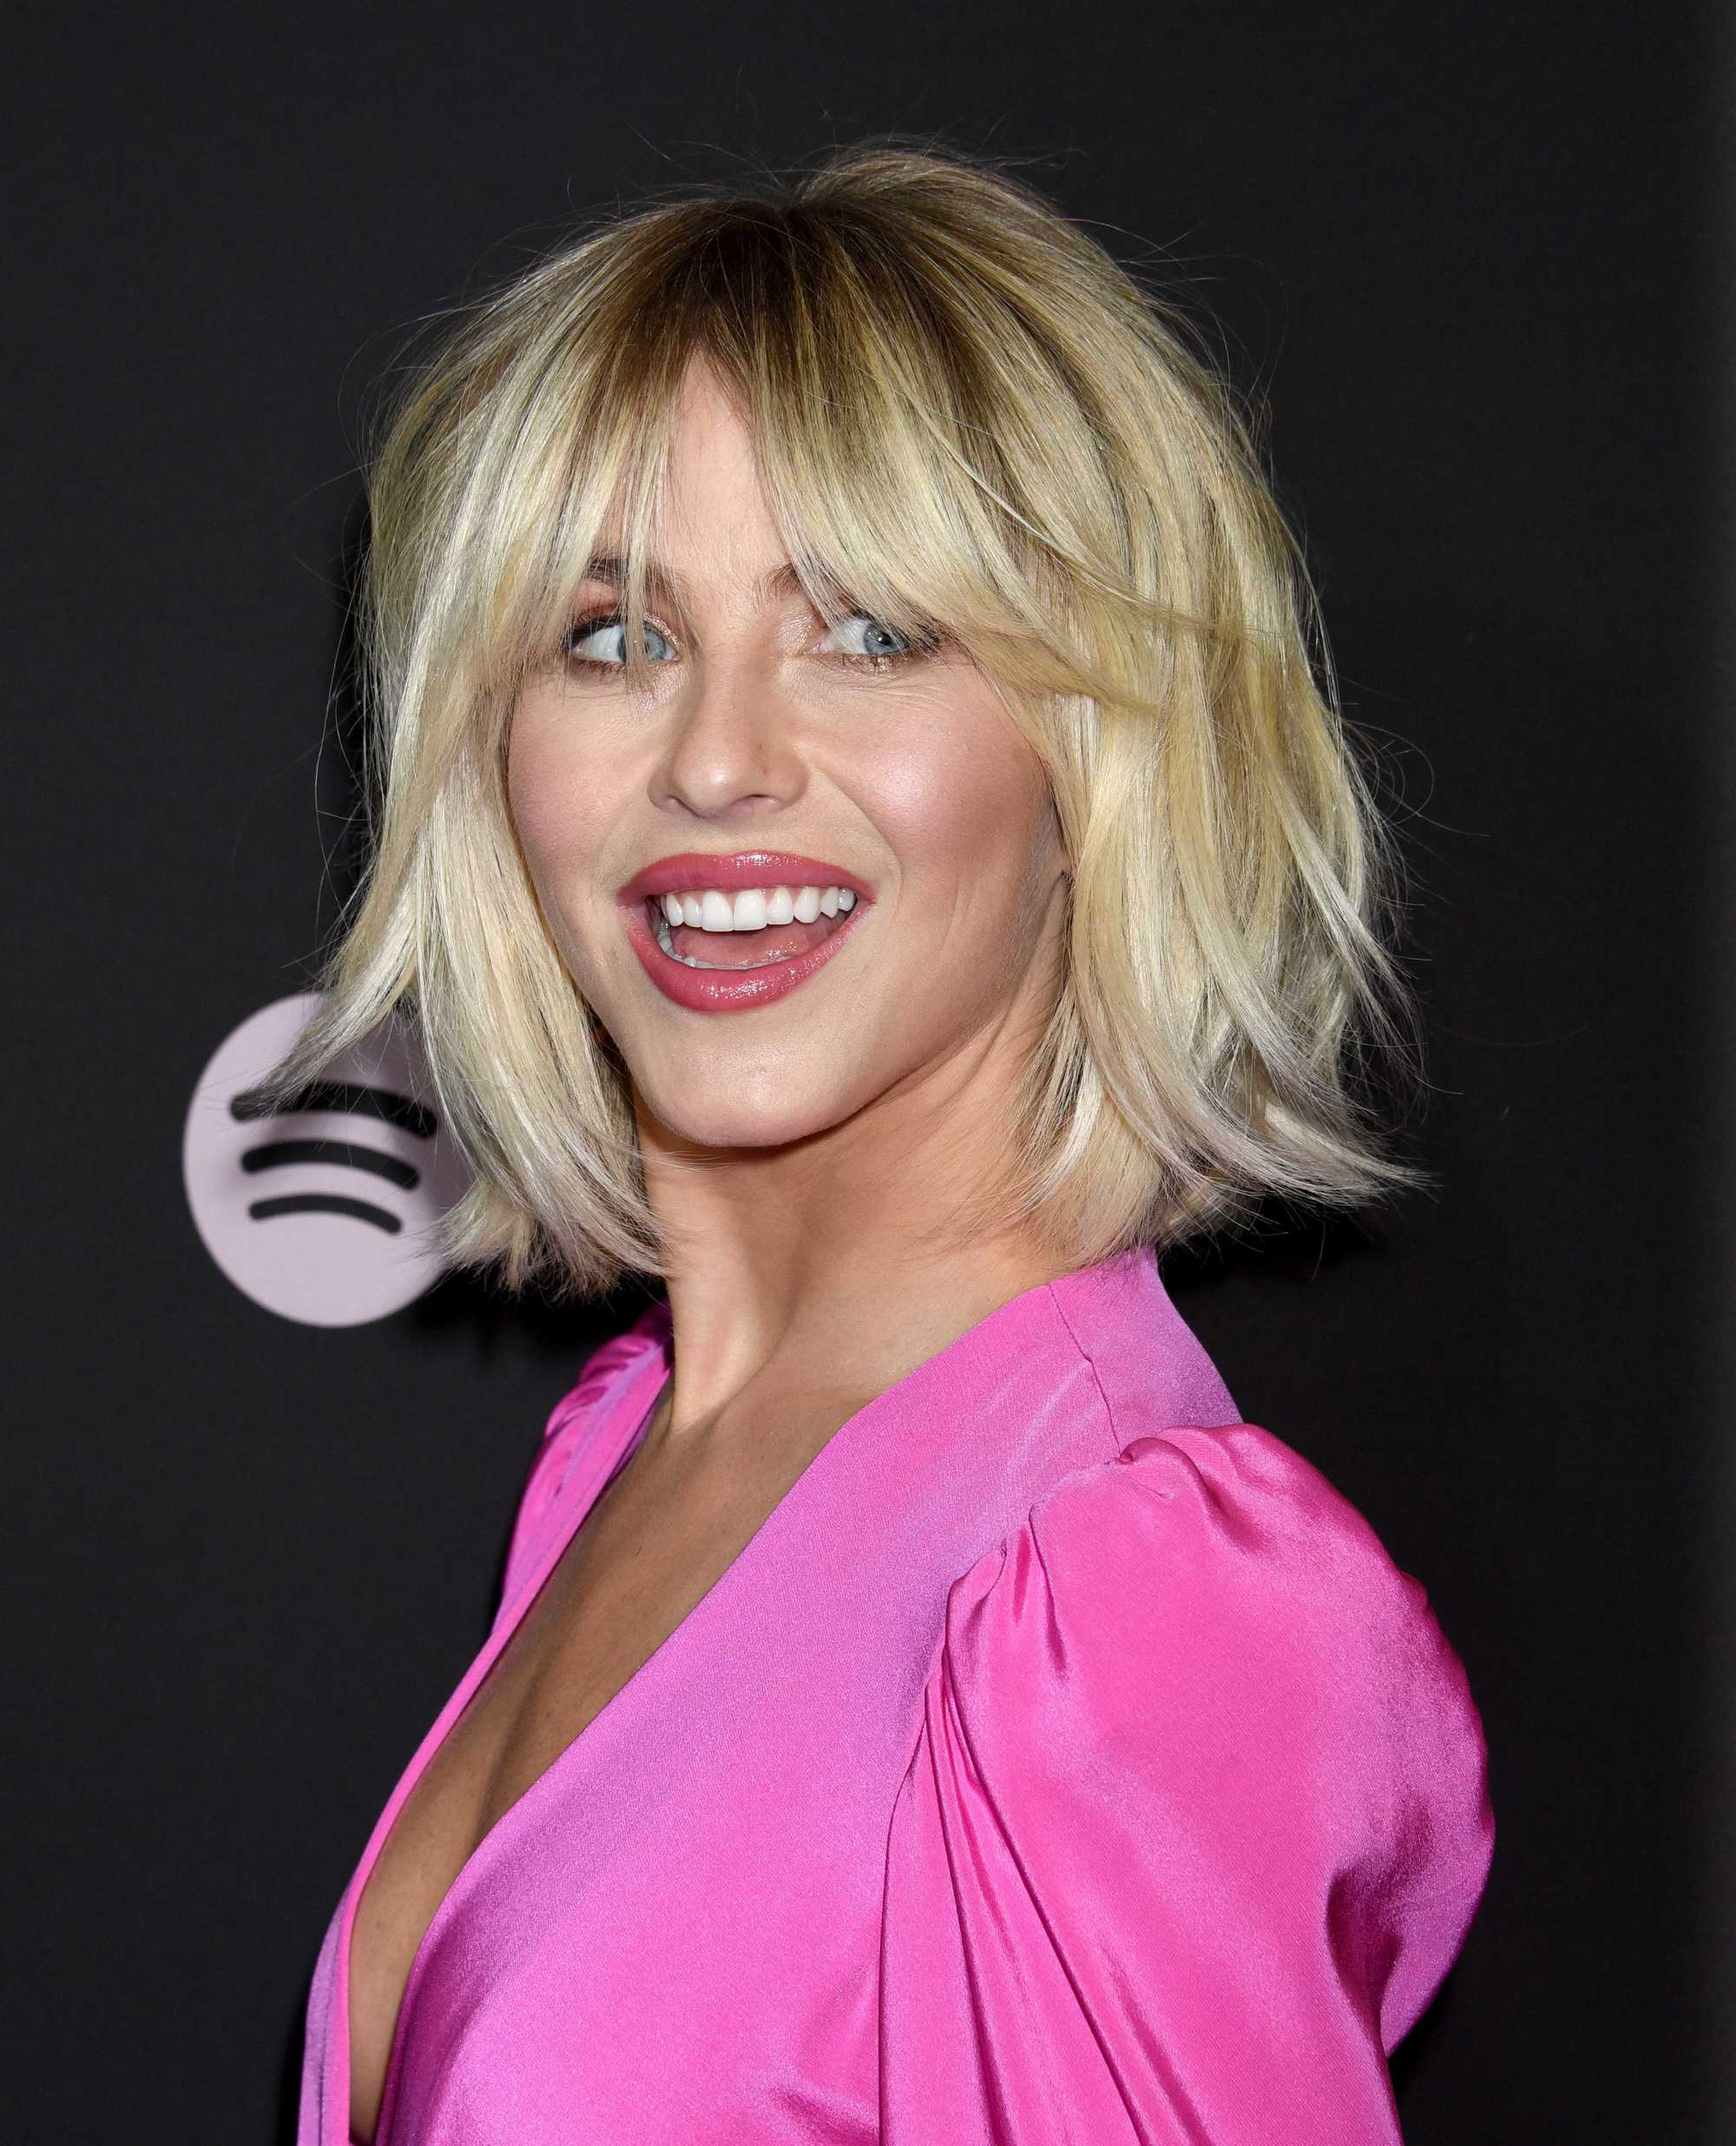 Julianne Hough on the red carpet with a shaggy golden blonde bob haircut wearing all pink